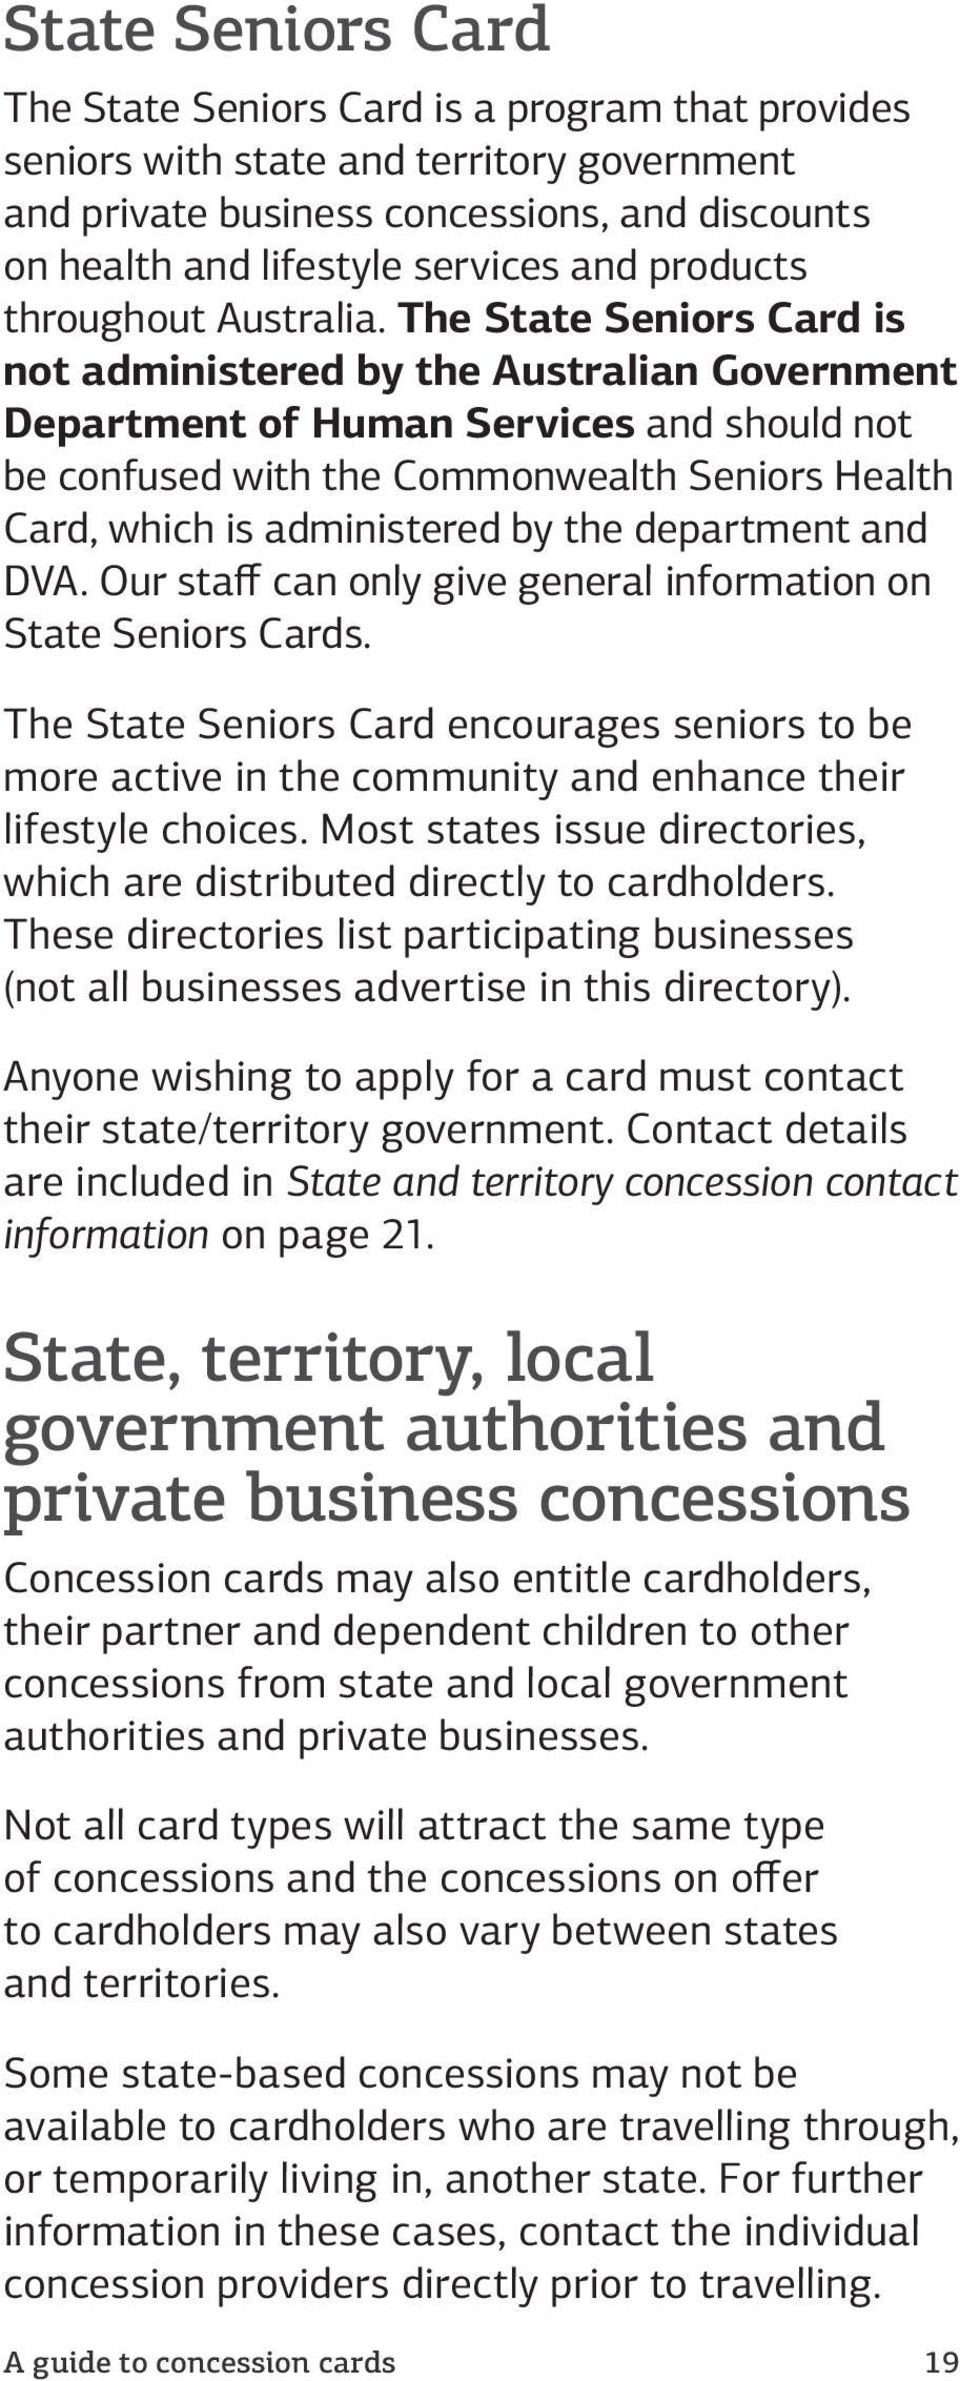 The State Seniors Card is not administered by the Australian Government Department of Human Services and should not be confused with the Commonwealth Seniors Health Card, which is administered by the